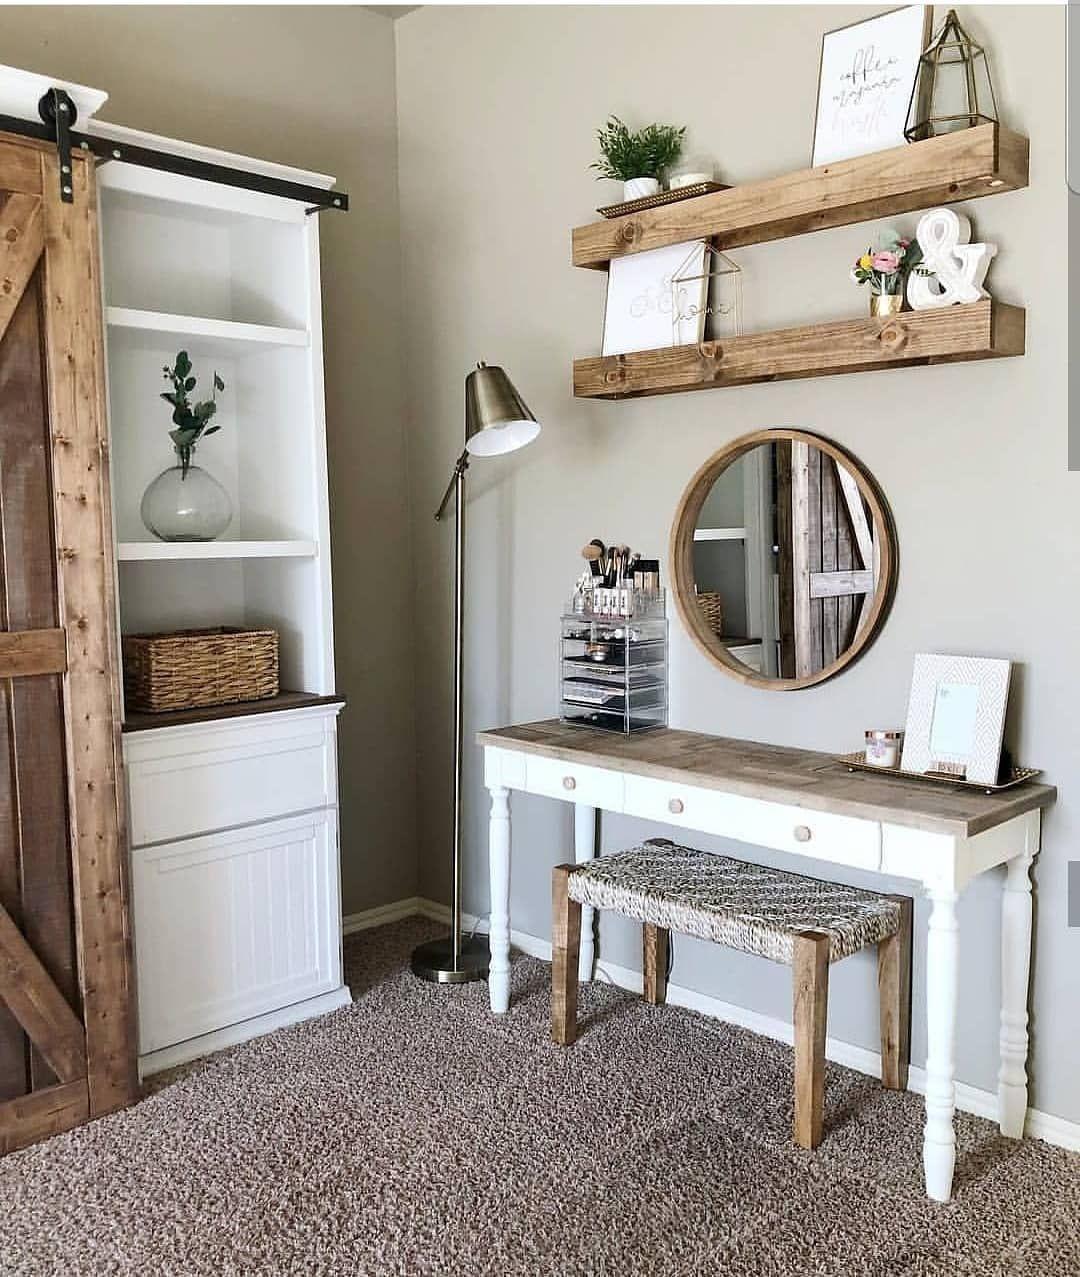 Simple And Rustic Vanity From Mrsdiy Farmhouse Farmhousedecor Farmhousebedroom Farmhousebath Inter Bedroom Makeup Vanity Farmhouse Vanity Rustic Vanity